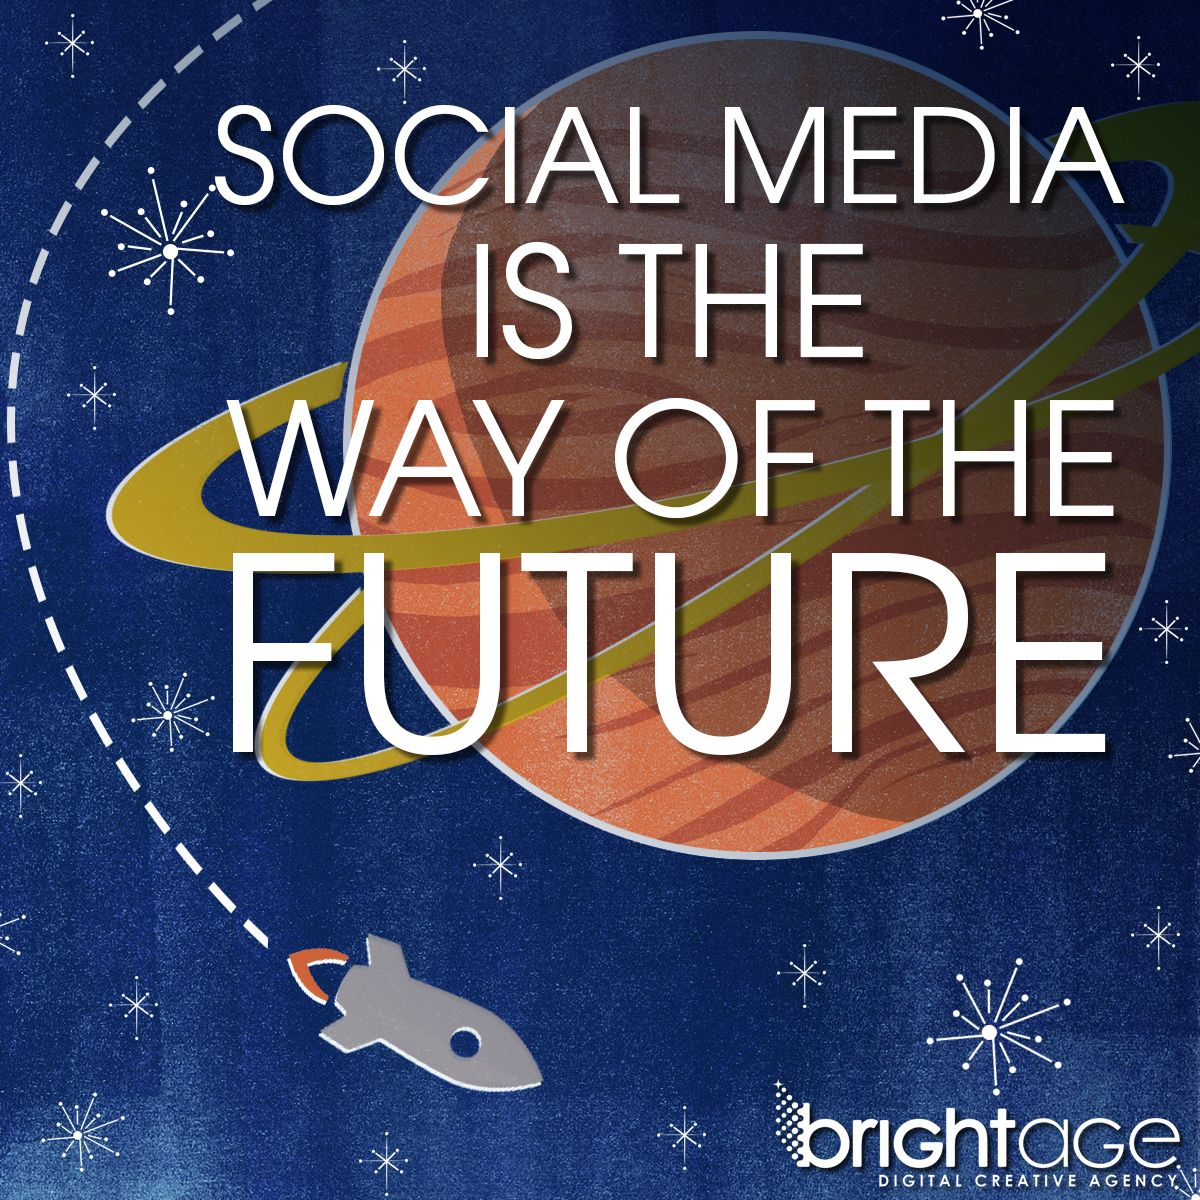 Social Media is the Way of the Future